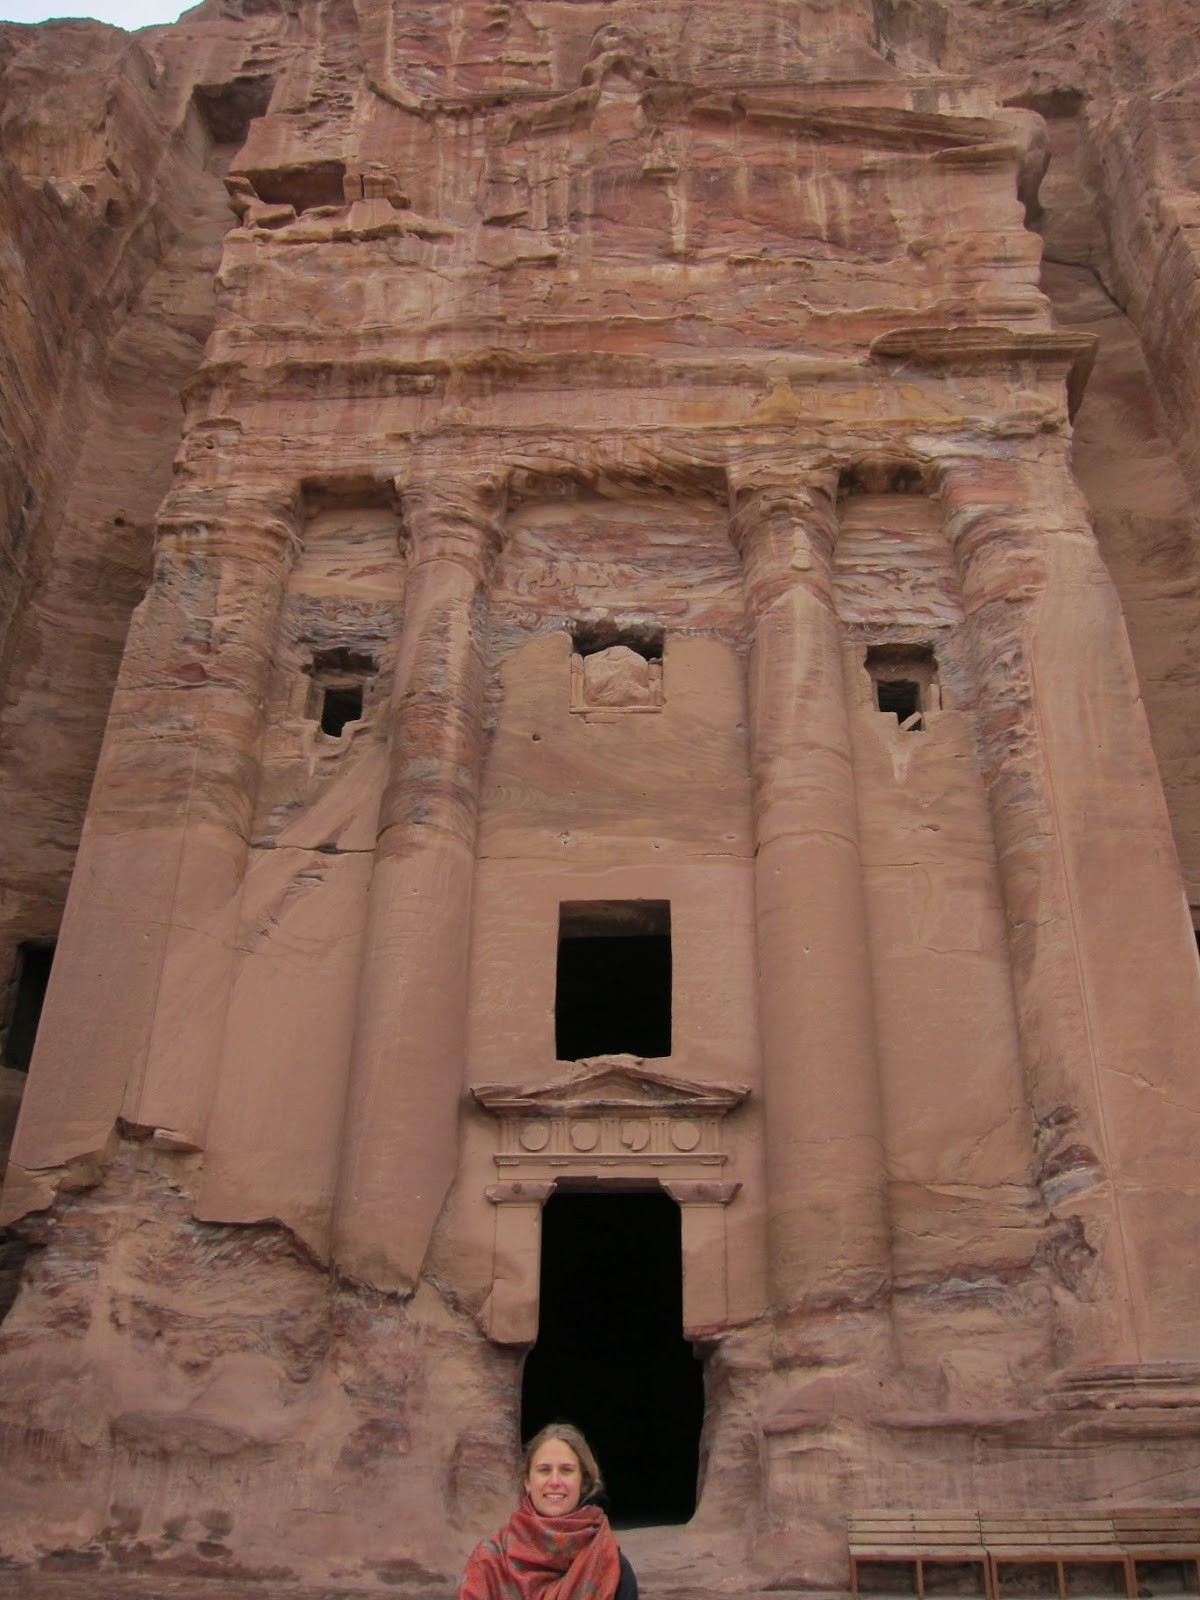 Closed Tomb Image http://cjworldtour.blogspot.com/2012/03/29th-february-nabatean-tombs-of-petra.html